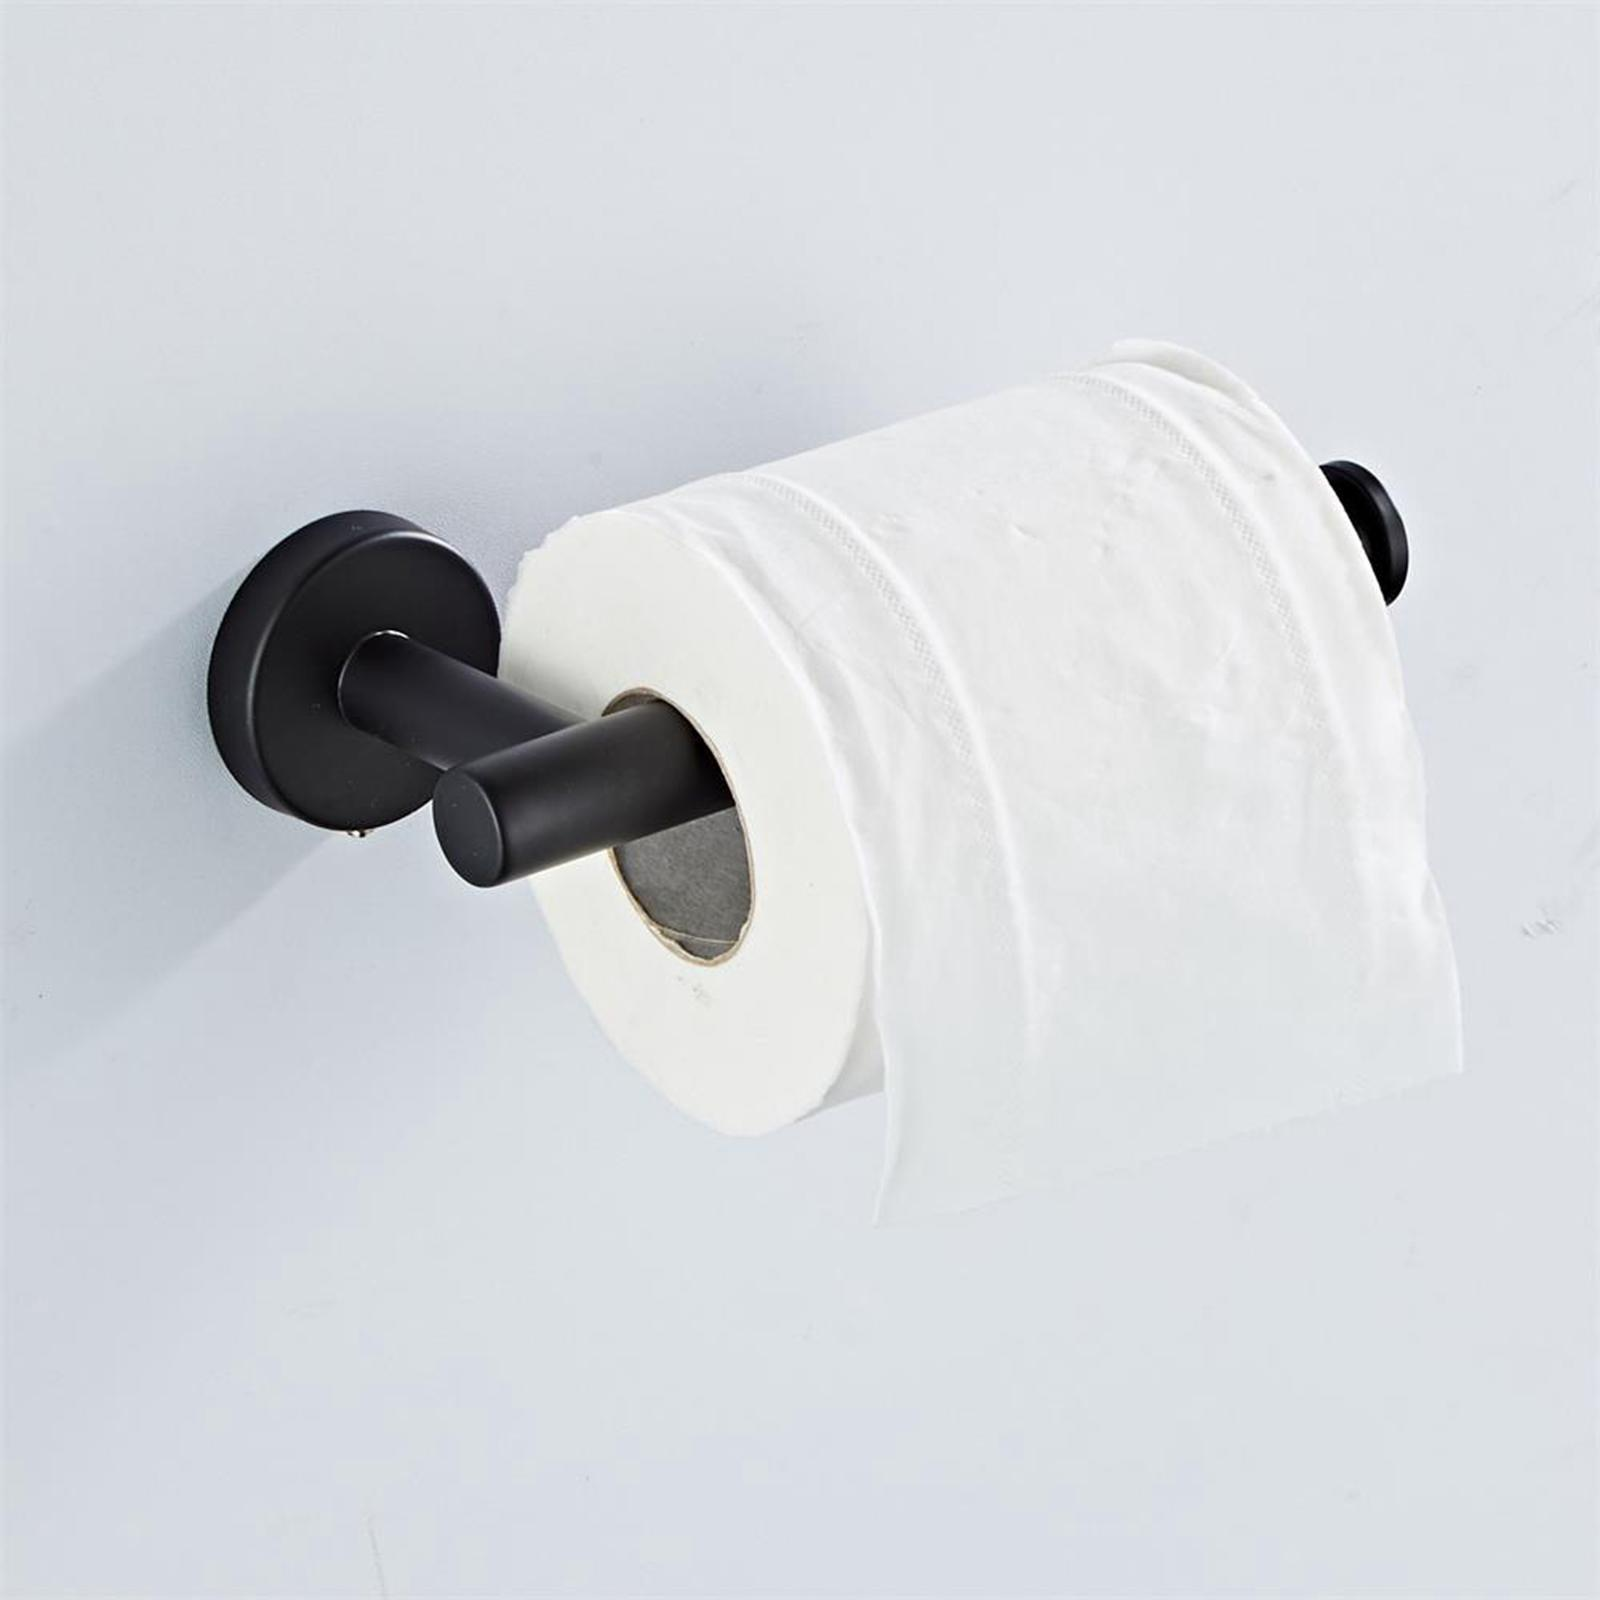 thumbnail 10 - 3x-Brushed-Robe-Hook-Toilet-Paper-Holder-12-034-Hand-Towel-Bar-Hardware-Set